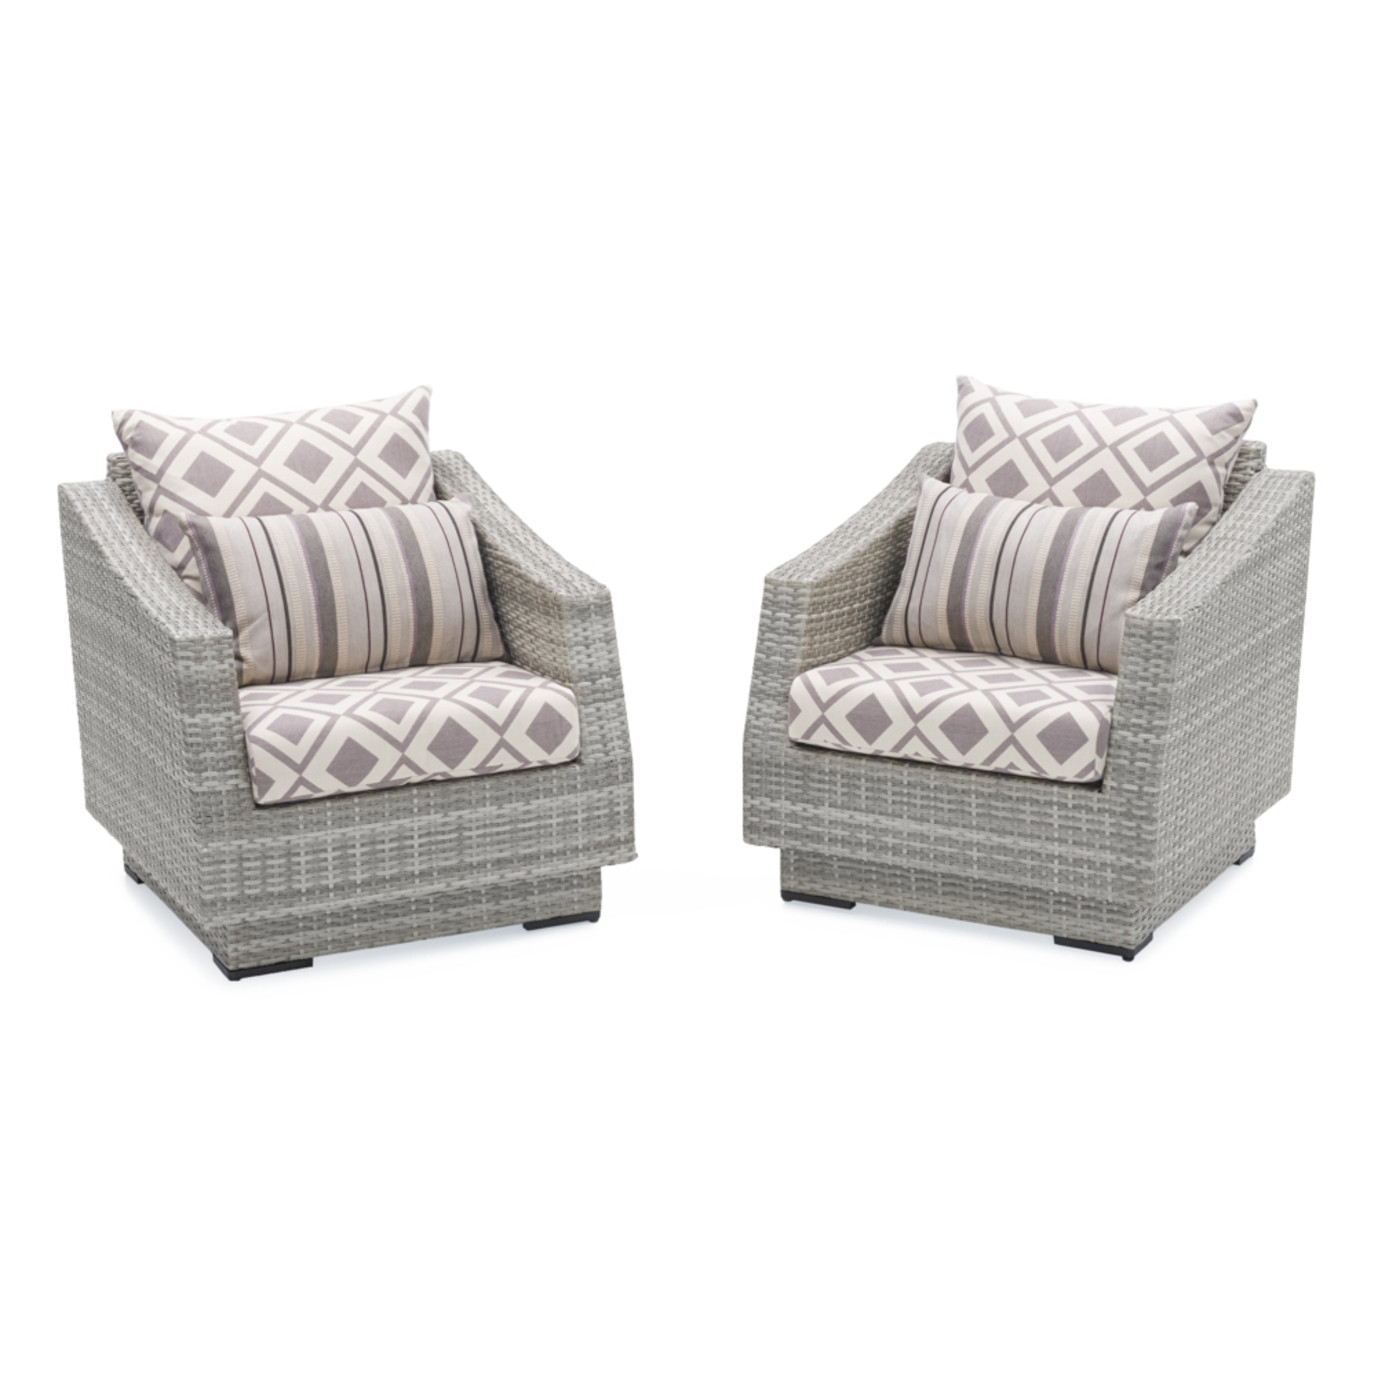 Cannes™ Club Chairs - Wisteria Lavender